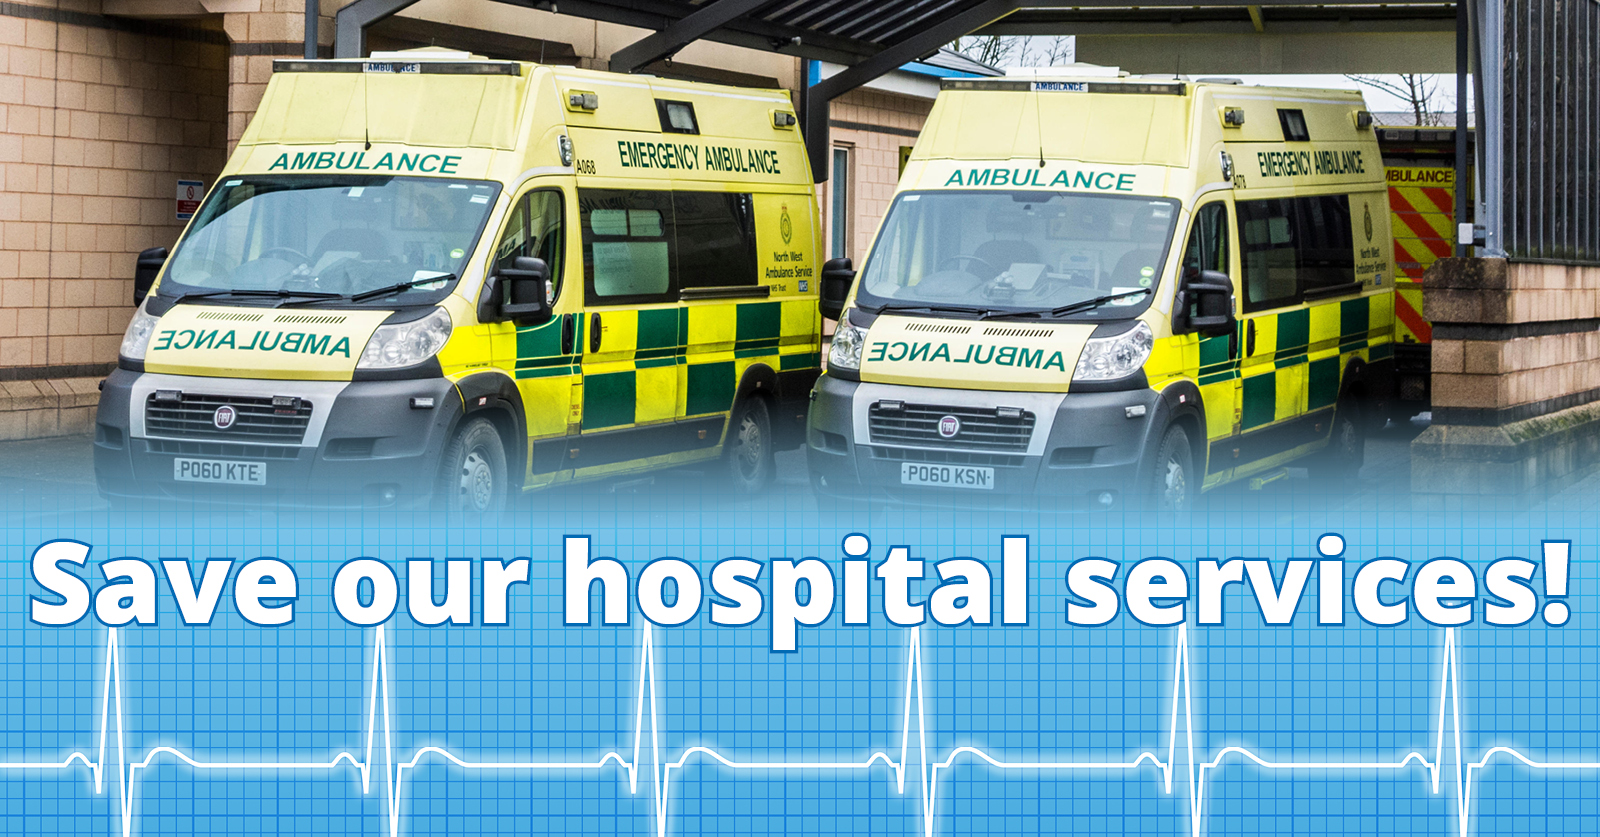 Save local hospital services